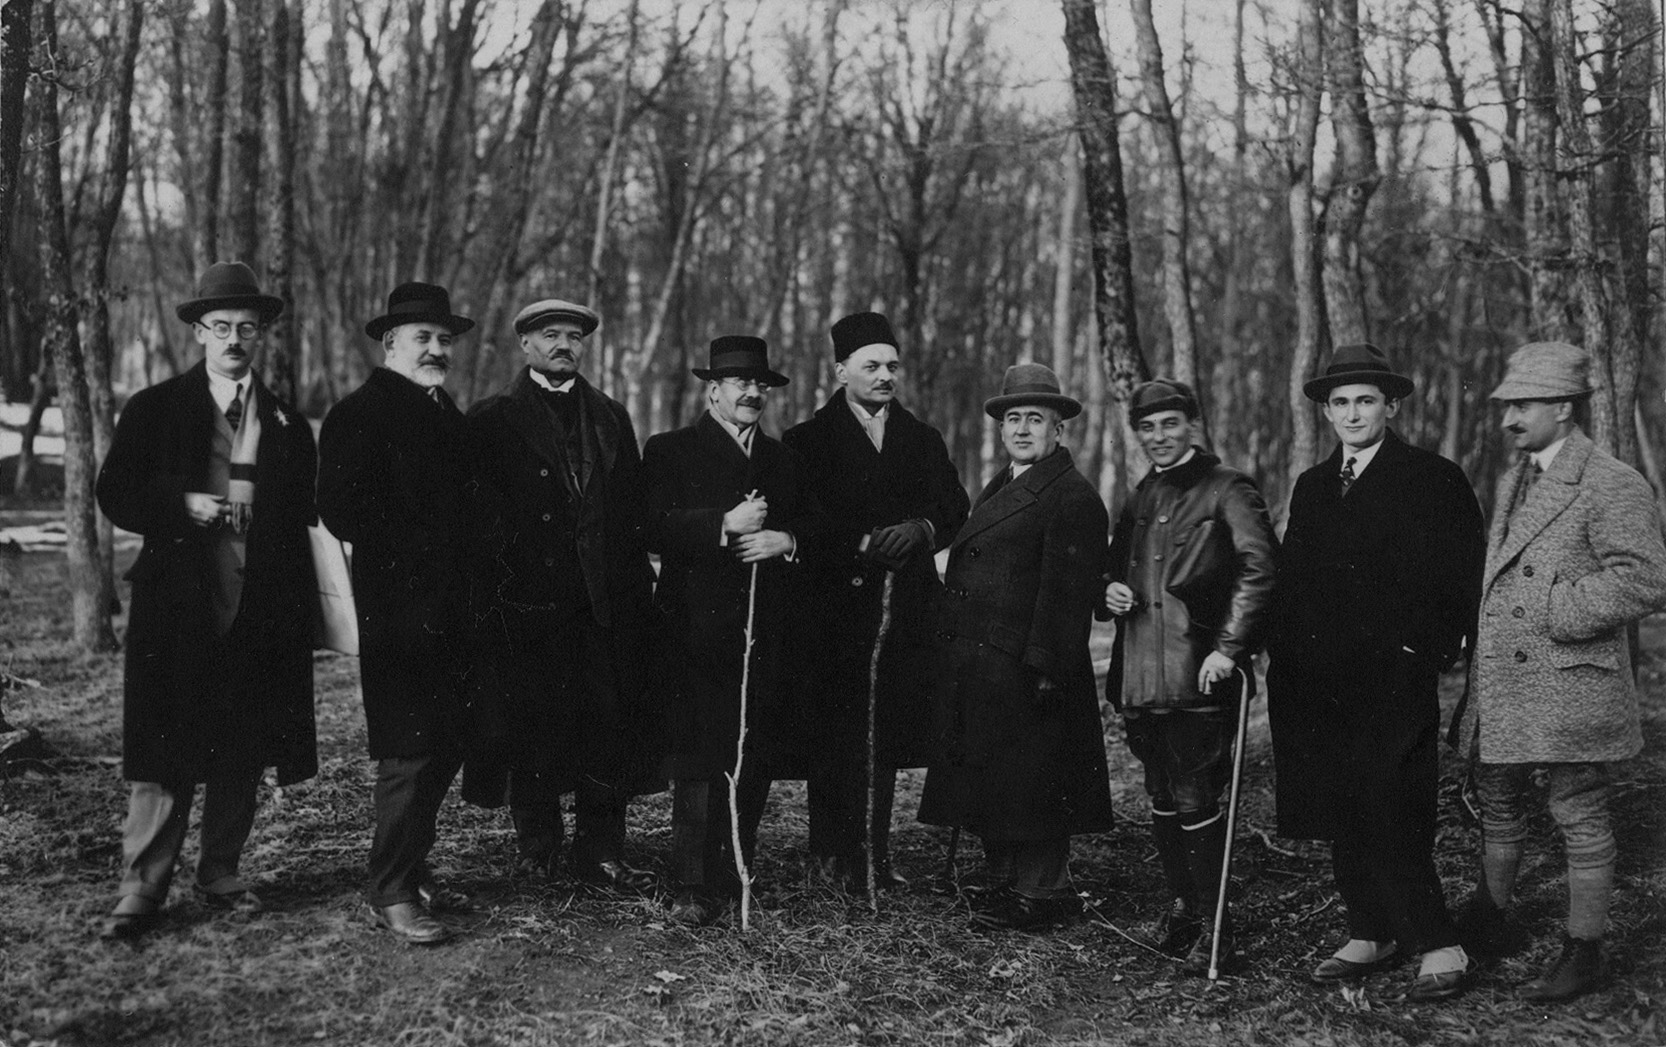 The expedition of Belgrade astronomers and mathematicians to Fruška Gora in order to choose the site for building of a new observatory. Left to right: R. Kašanin, J. Mihailović, M. Petrović, P. Popović, A. Bilimović, M. Milanković, V. Mišković, V. Mišković, V. Gračanin and the guide (SASA Archive, 14188/7)